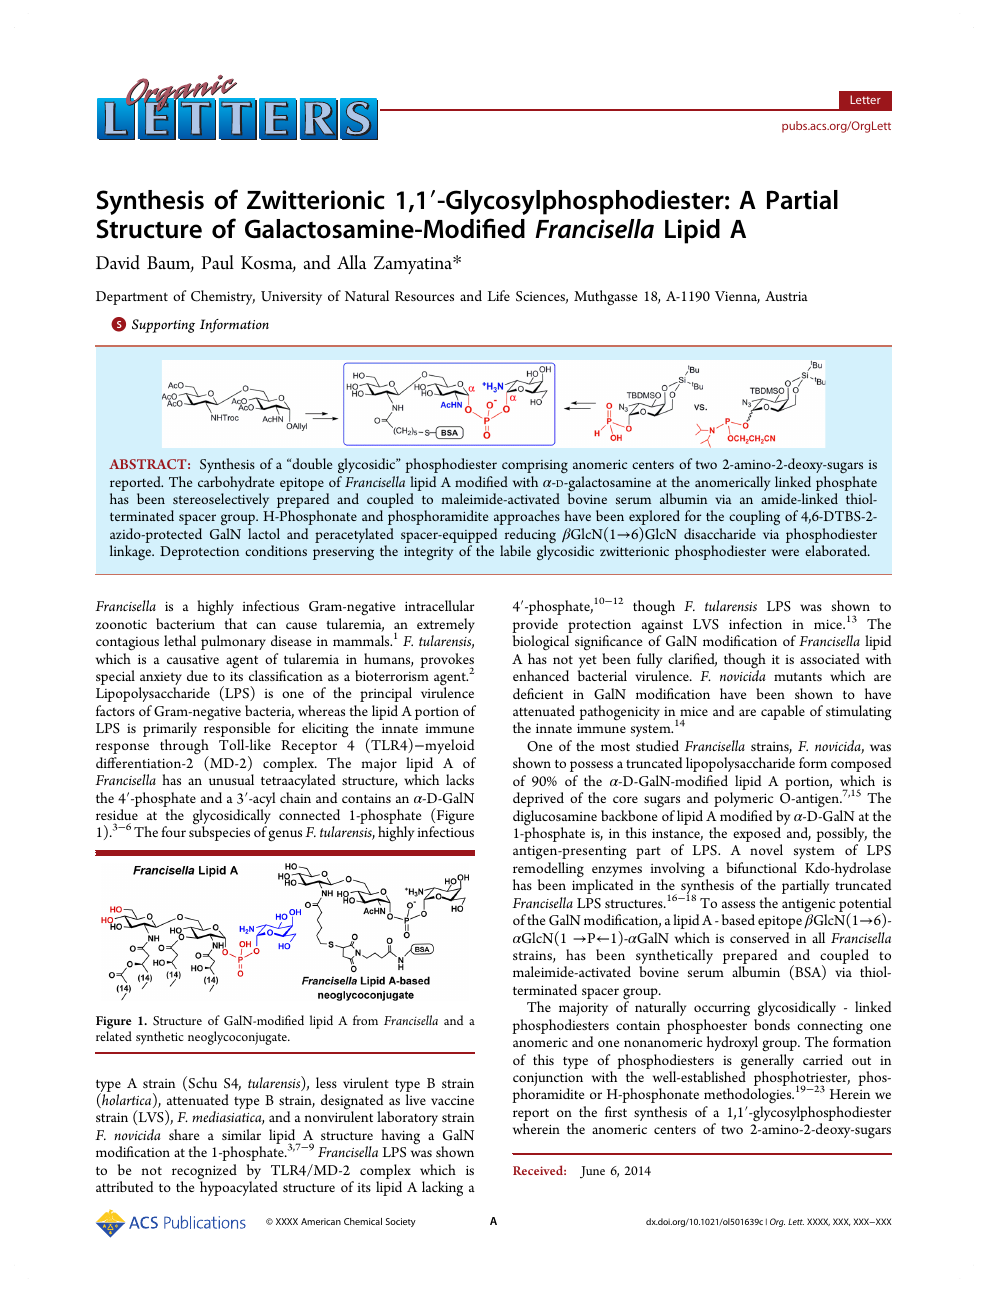 Synthesis of Zwitterionic 1,1′-Glycosylphosphodiester: A